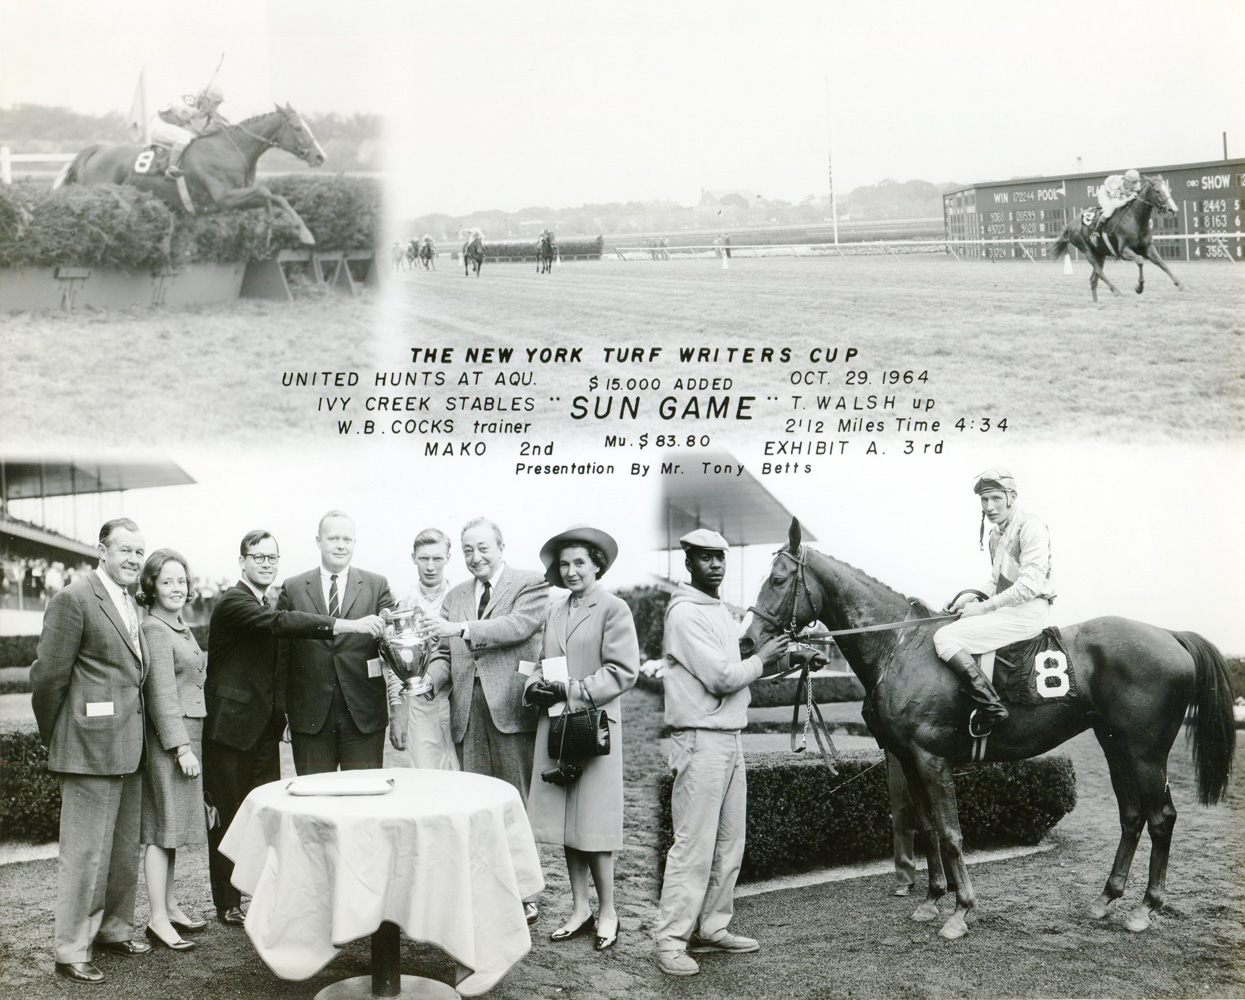 Win composite photograph for the 1964 New York Turf Writers Cup at Aqueduct, won by Sun Game (trained by W. B. Cocks) (NYRA/Museum Collection)